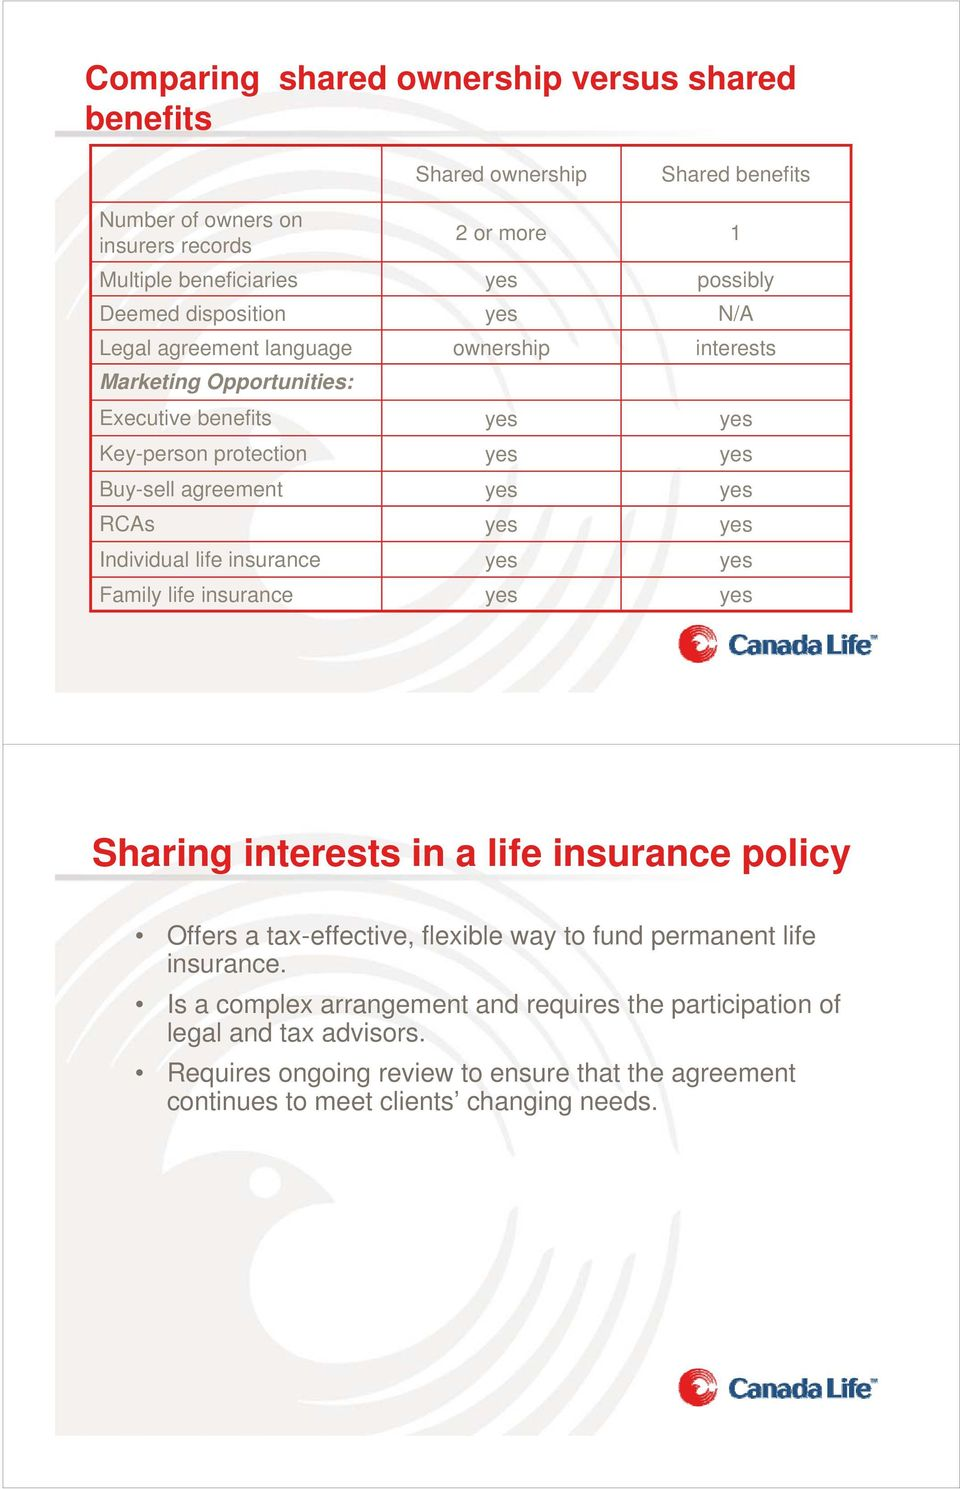 Shared benefits 1 possibly N/A interests Sharing interests in a life insurance policy Offers a tax-effective, flexible way to fund permanent life insurance.